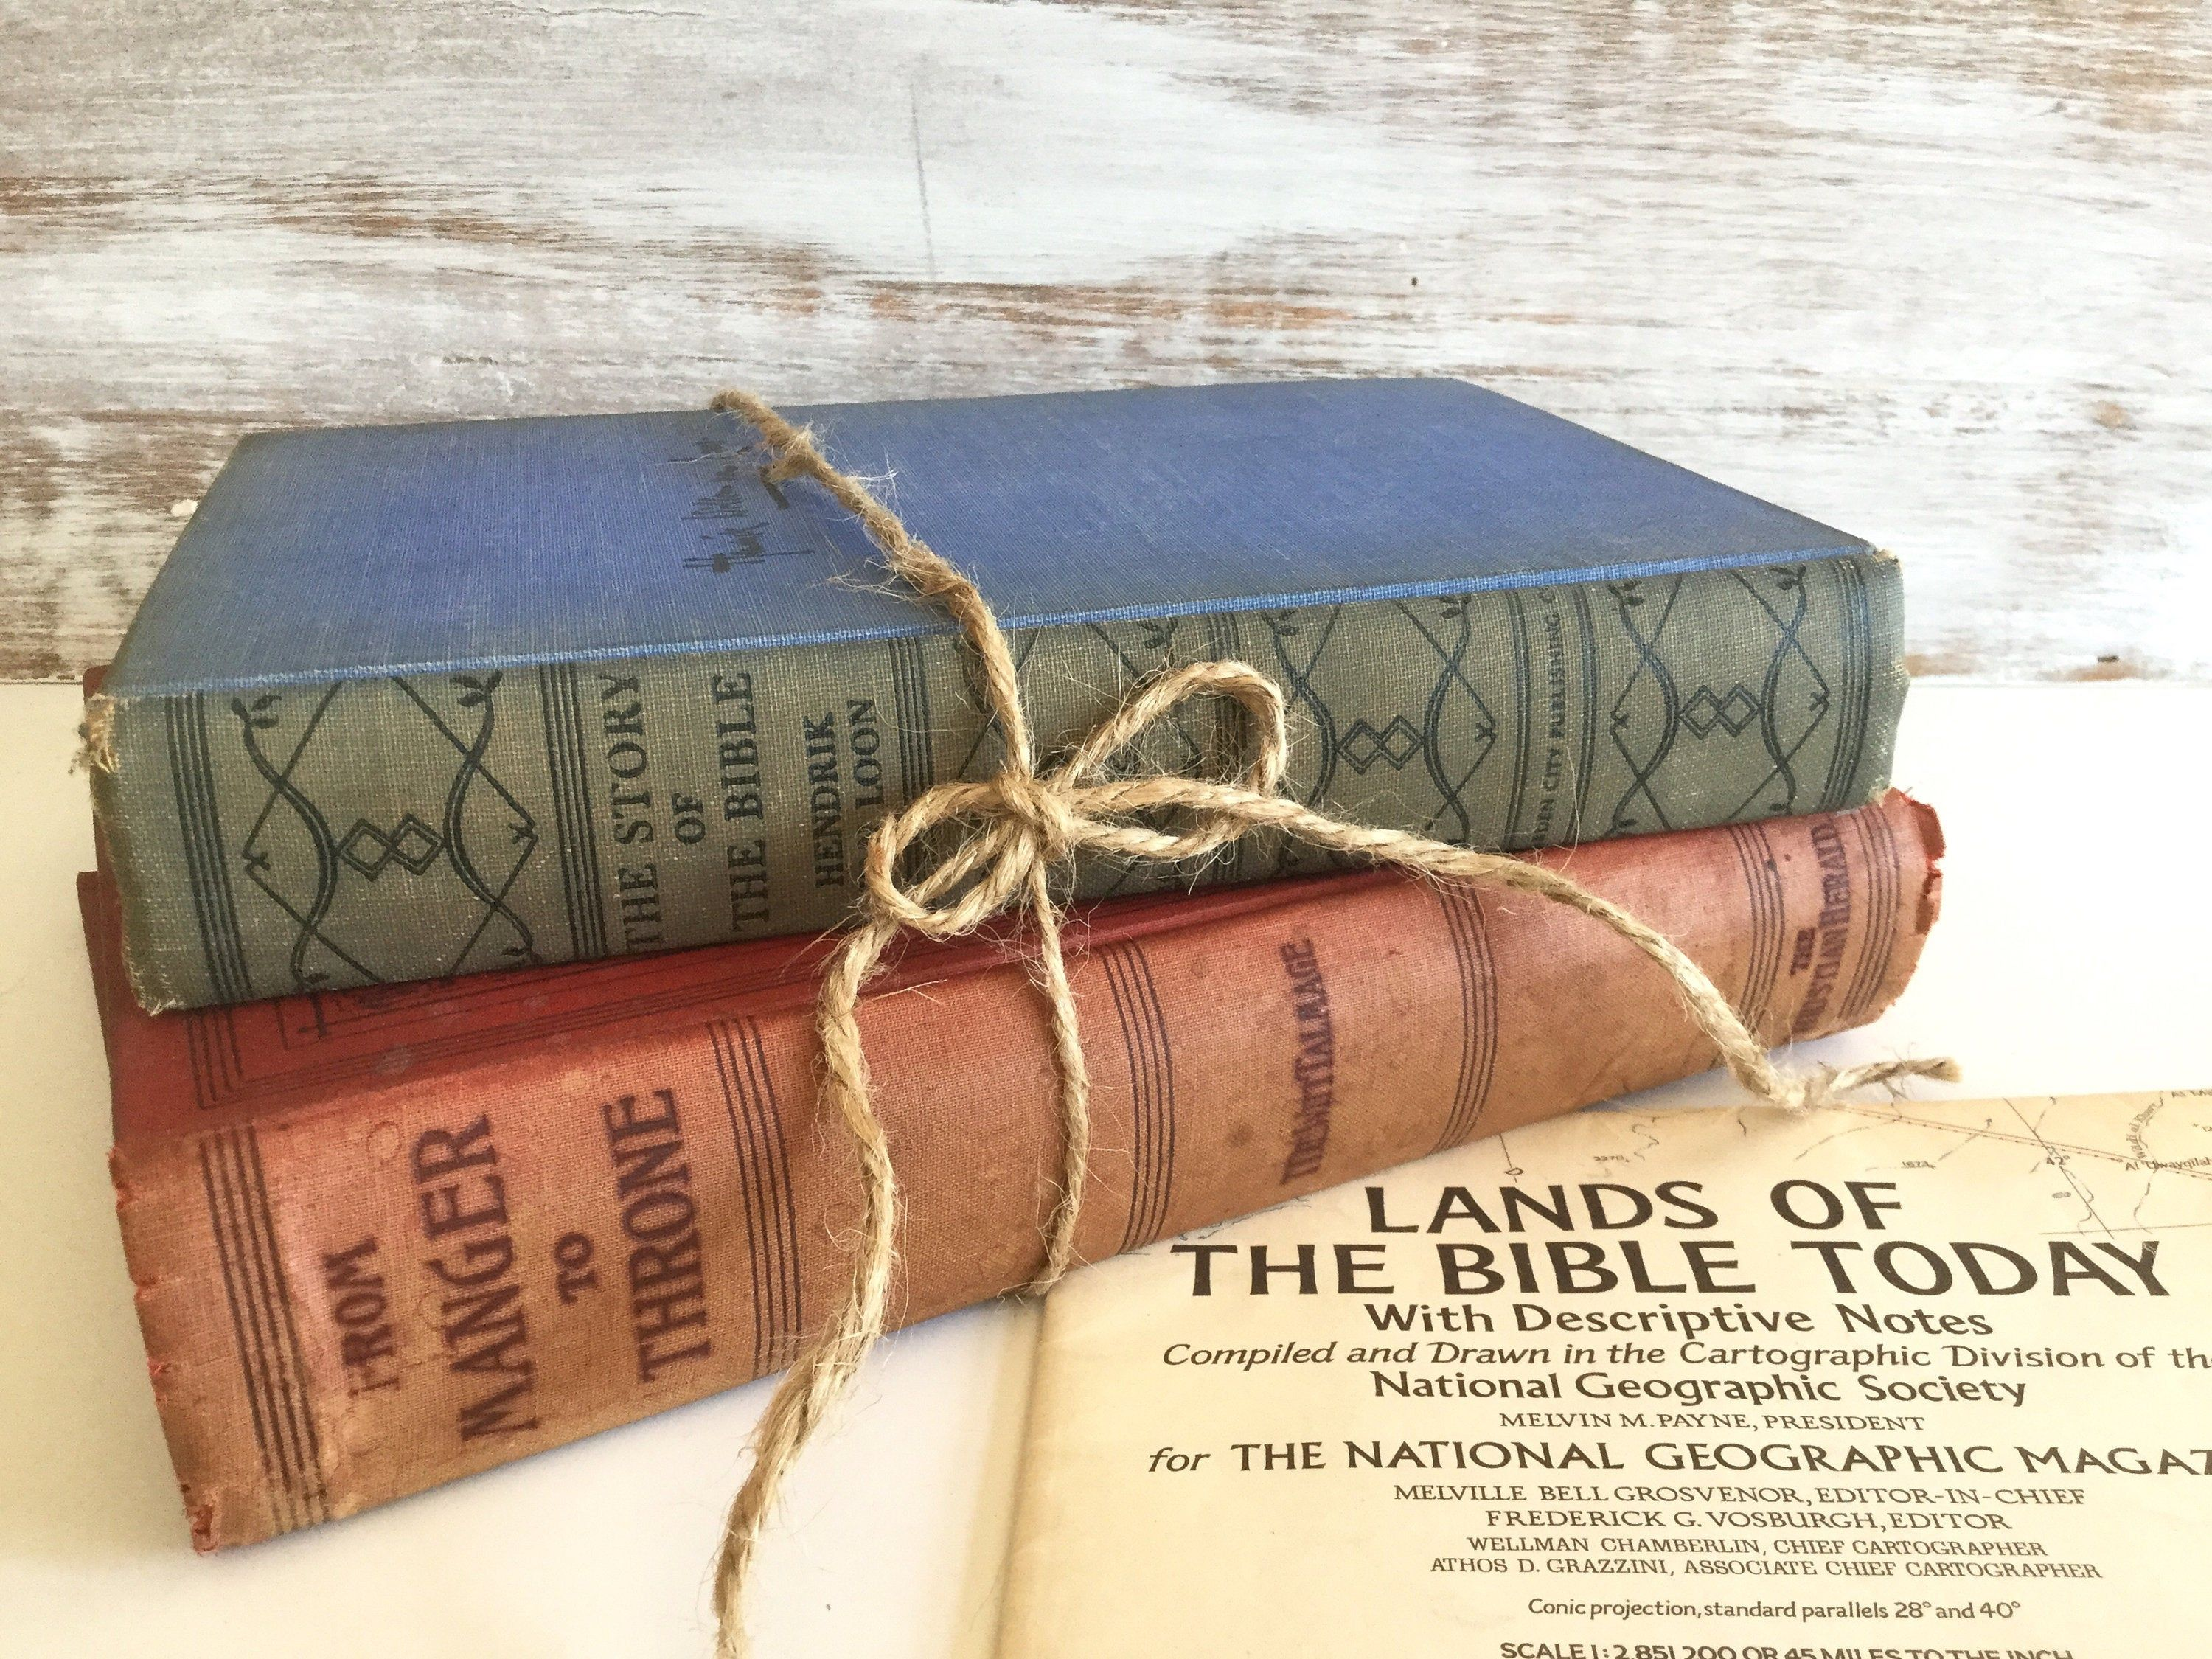 Vintage Antique Bible Books From The Manger To The Throne The Story Of The Bible Vintage Map Lands Of The Bible T Book Decor Vintage Books Vintage Map